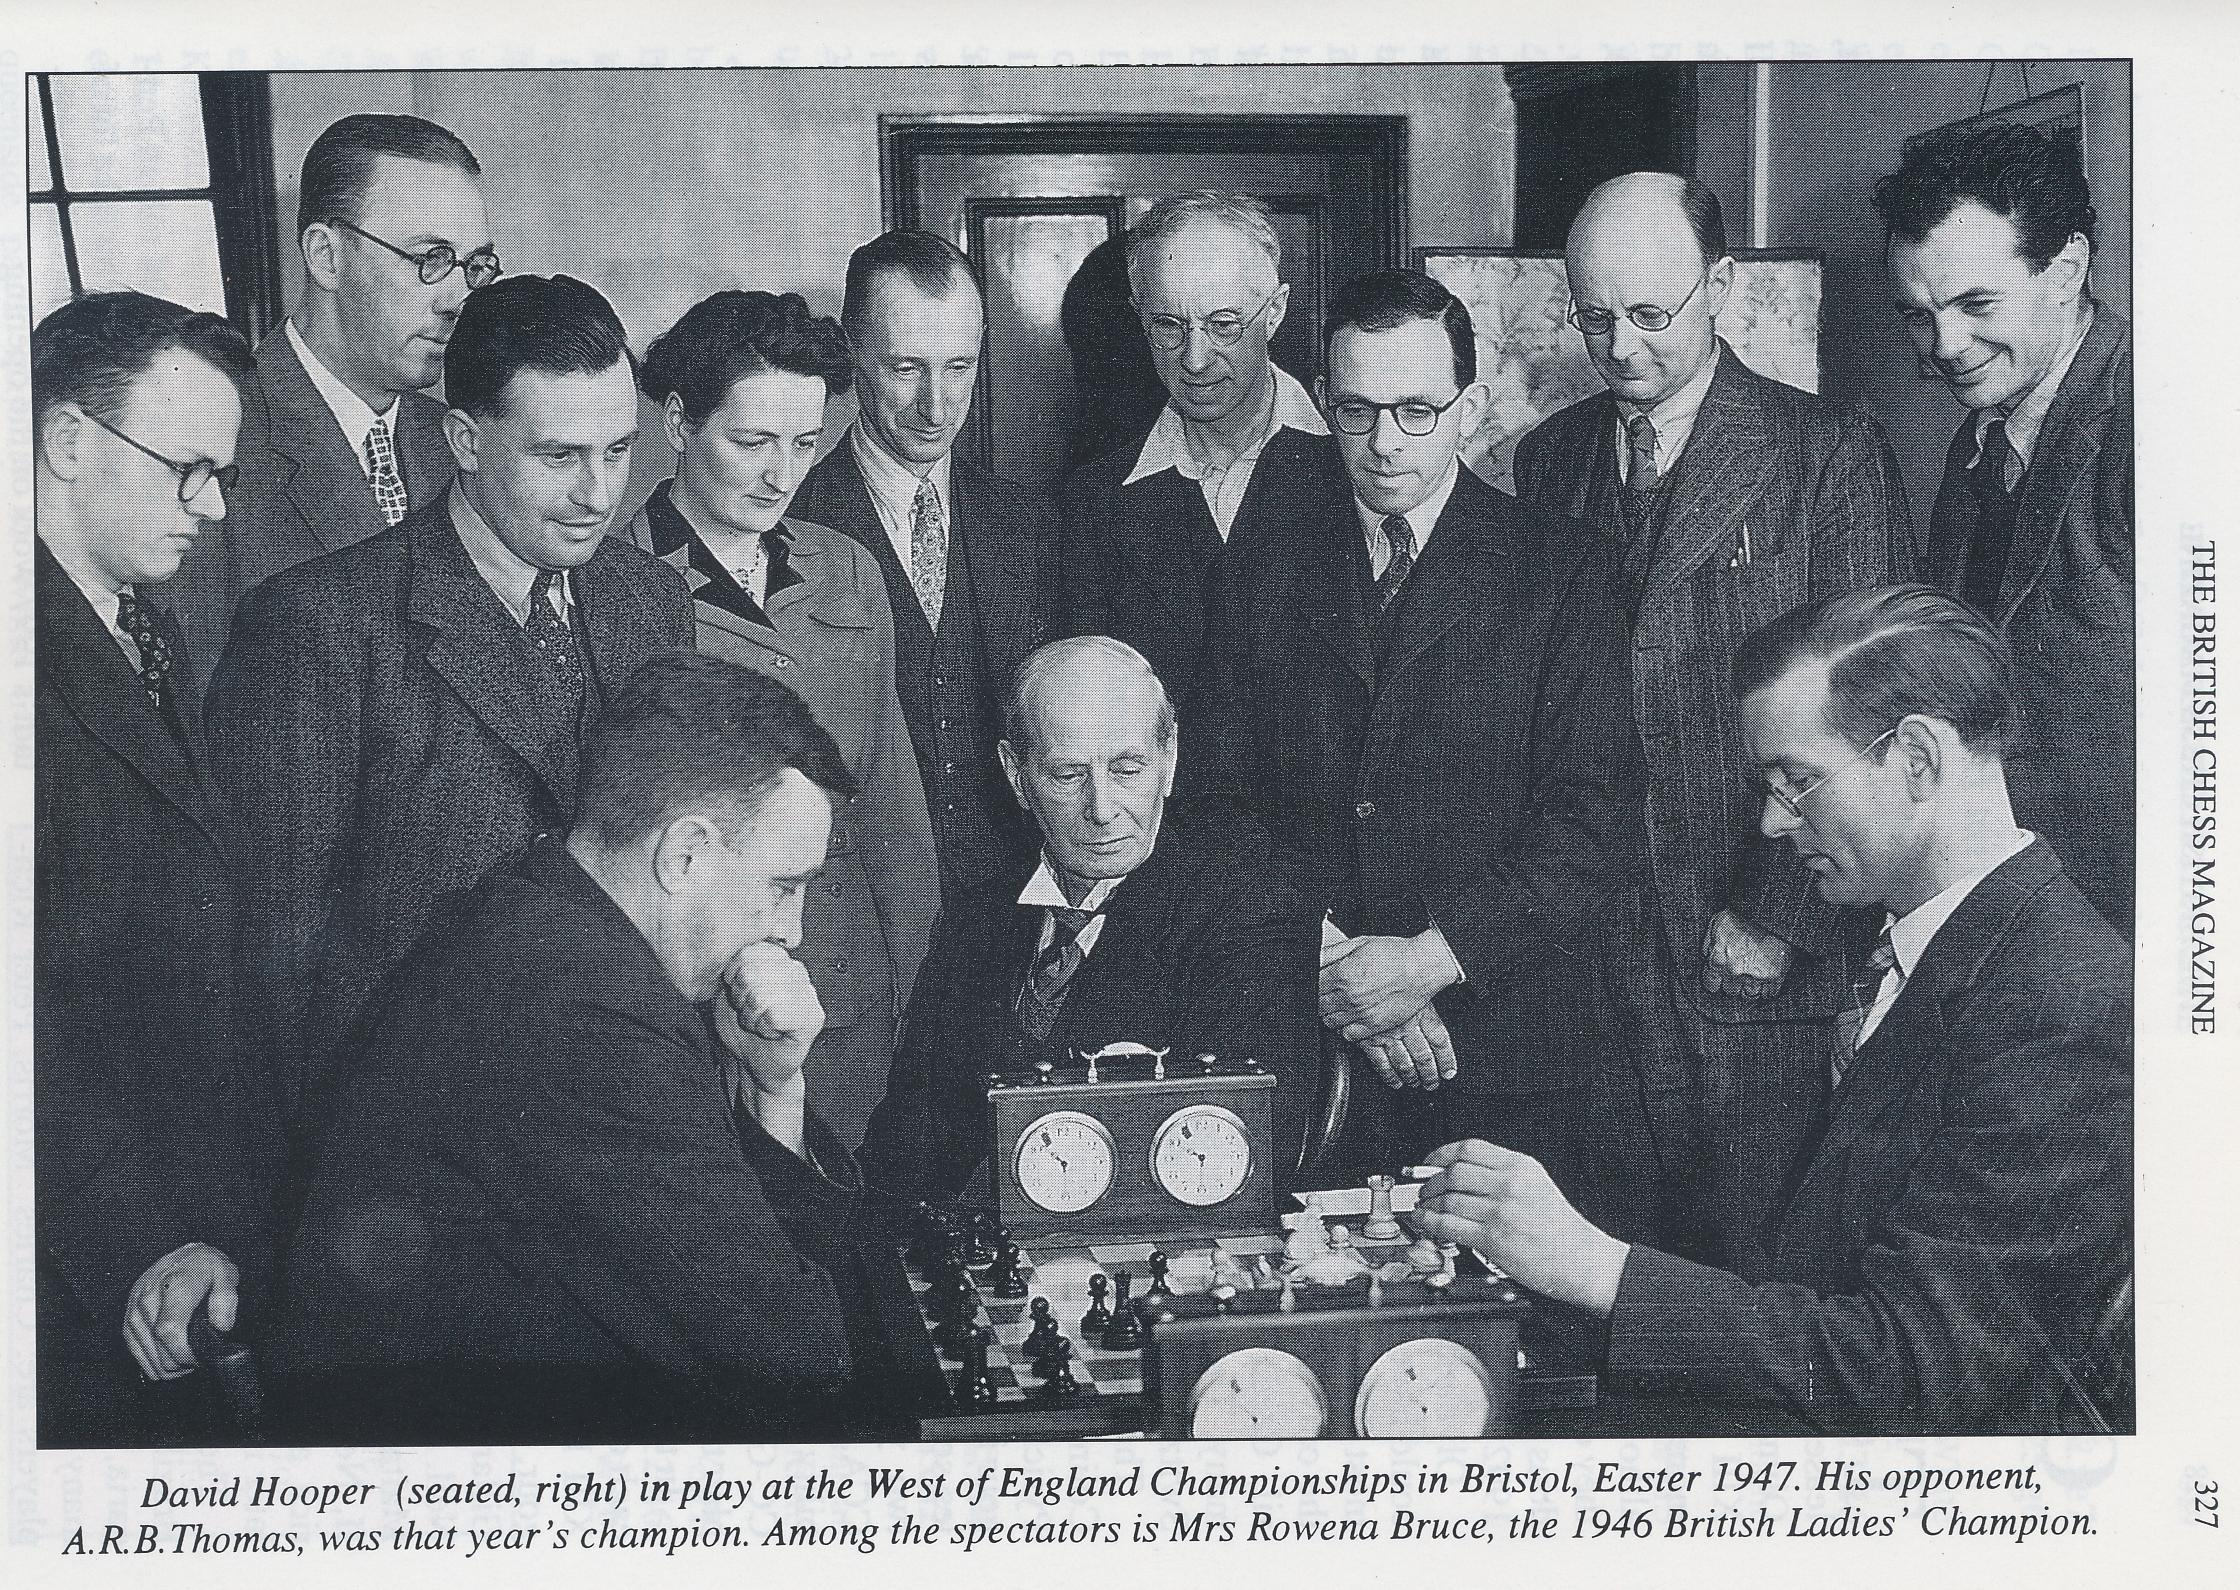 David Hooper (seated right) in play at the West of England Championships in Bristol, Easter, 1947. His opponent , ARB Thomas , was that year's champion. Among the spectators is Mrs. Rowena Bruce, the 1946 British Ladies' Champion. BCM, Volume 118, #6, p.327. The others in the photo are L - R: H. V. Trevenen; H. Wilson-Osborne (WECU President); R. A. (Ron) Slade; Rowena Bruce; Ron Bruce; H. V. (Harry) Mallison; Chris Sullivan; C. Welch (Controller); F. E. A. (Frank) Kitto.